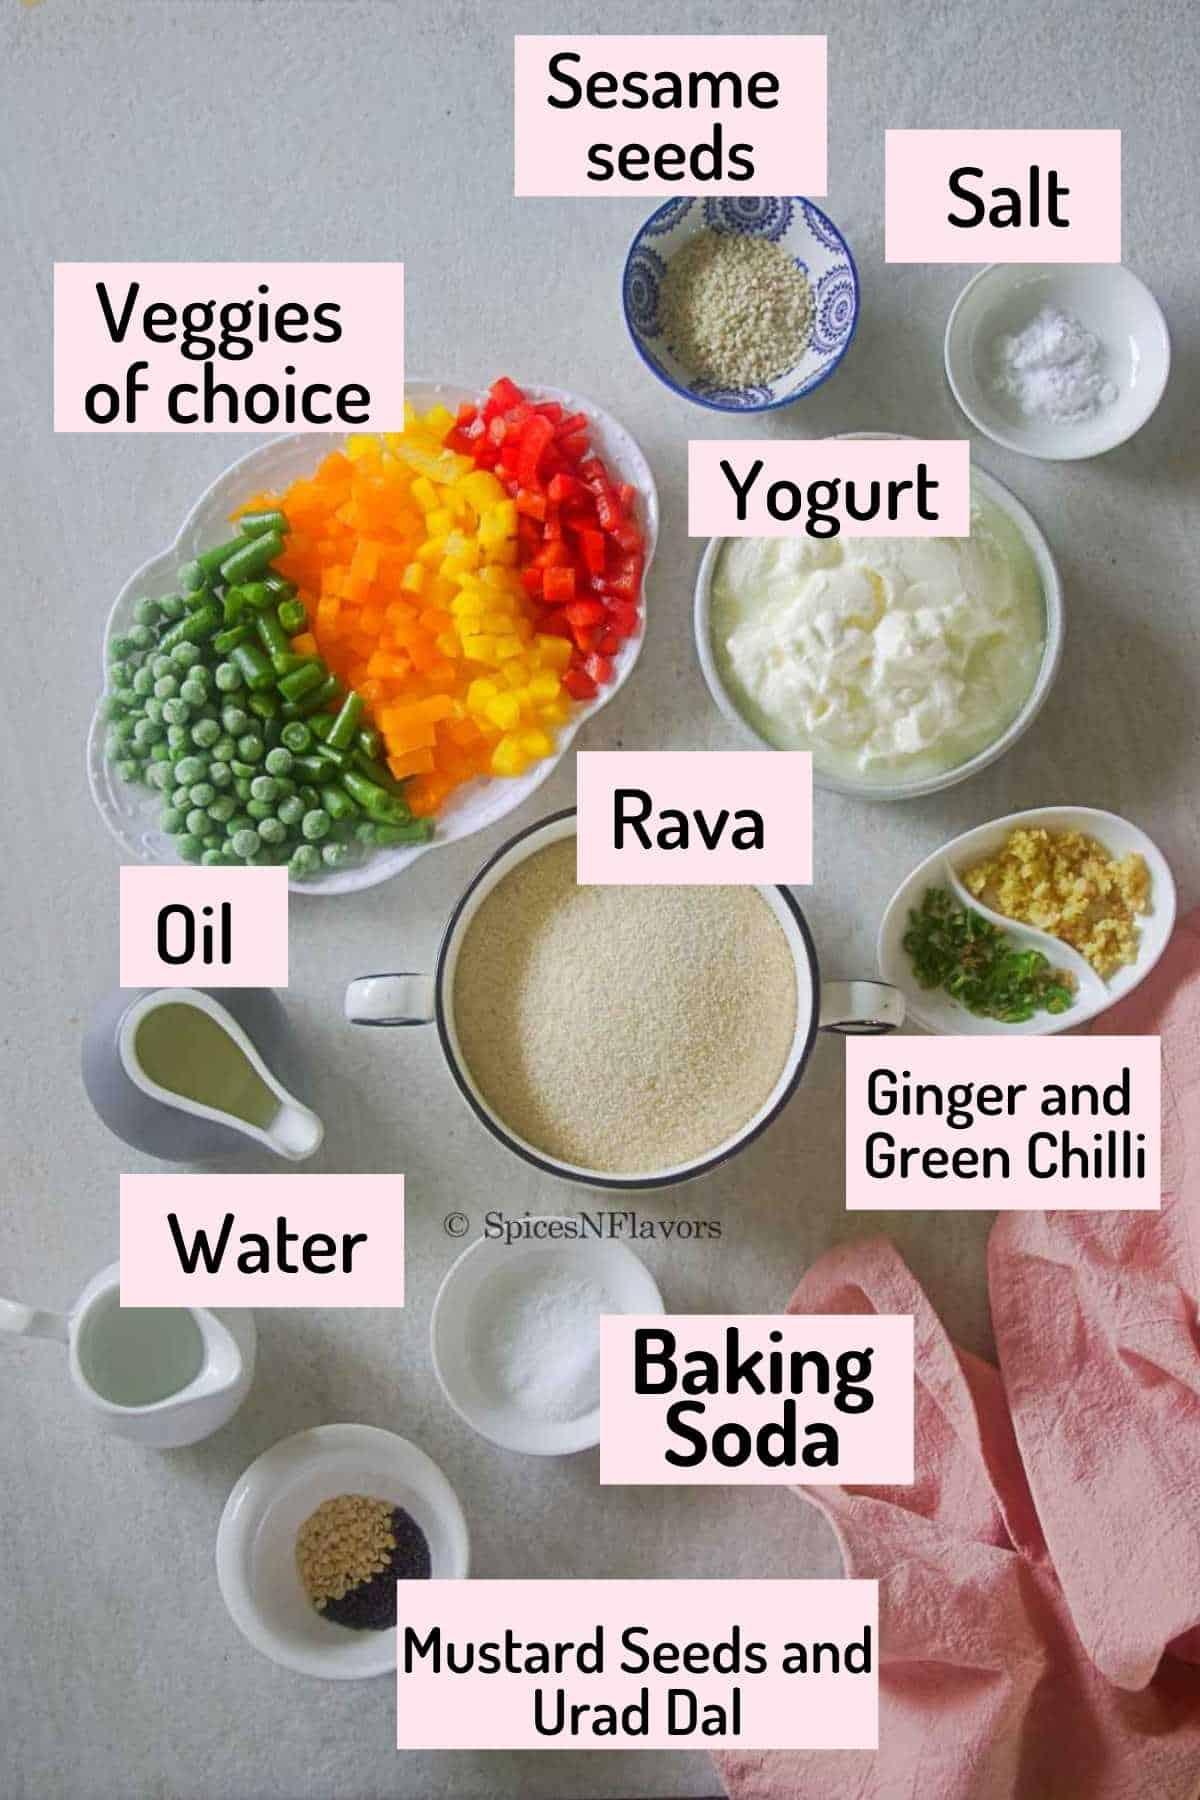 ingredients needed to make the savoury cake